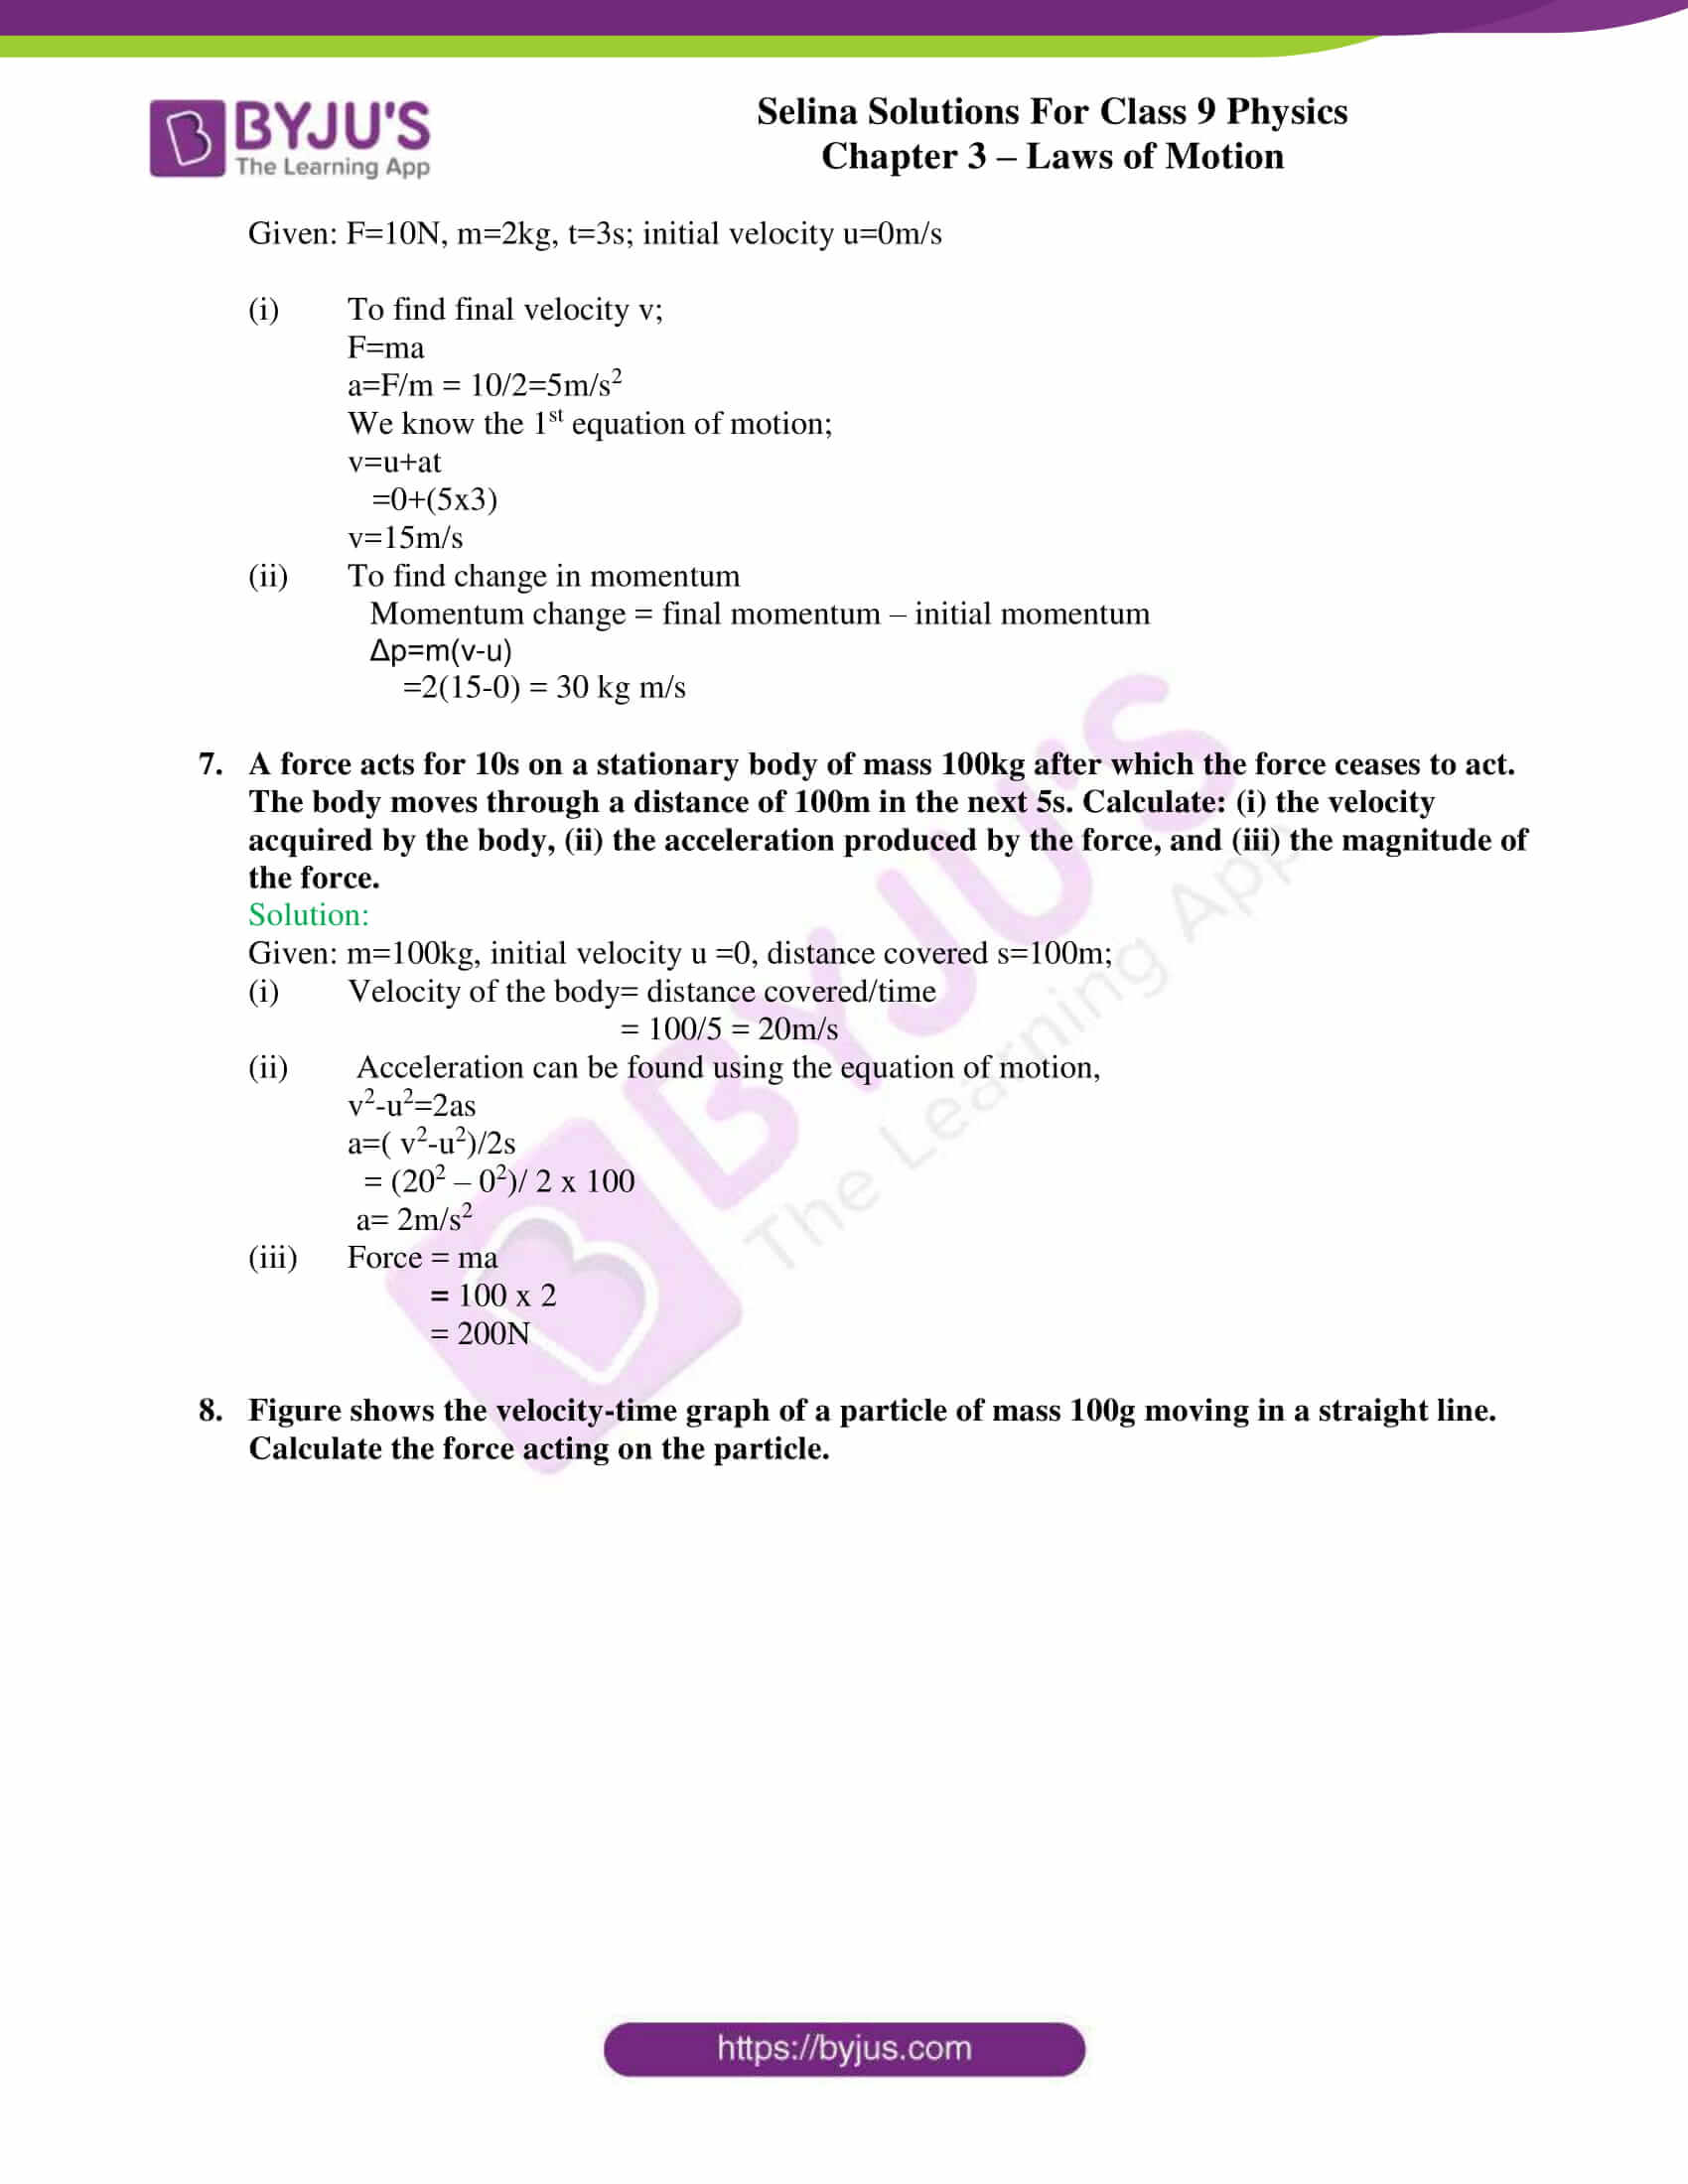 selina solutions class 9 physics chapter 3 Laws of Motion part 17